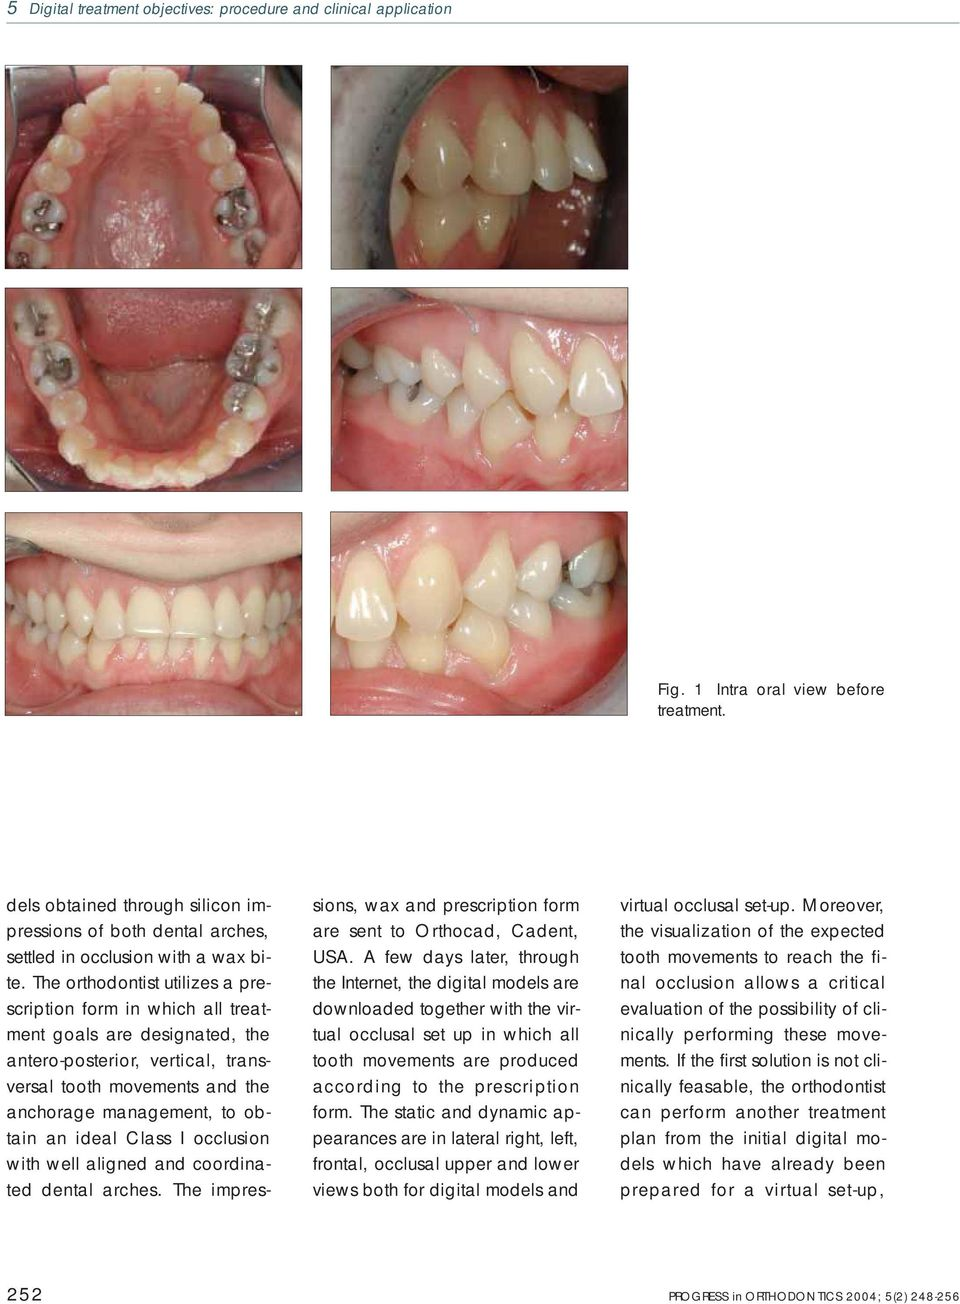 The orthodontist utilizes a prescription form in which all treatment goals are designated, the antero-posterior, vertical, transversal tooth movements and the anchorage management, to obtain an ideal